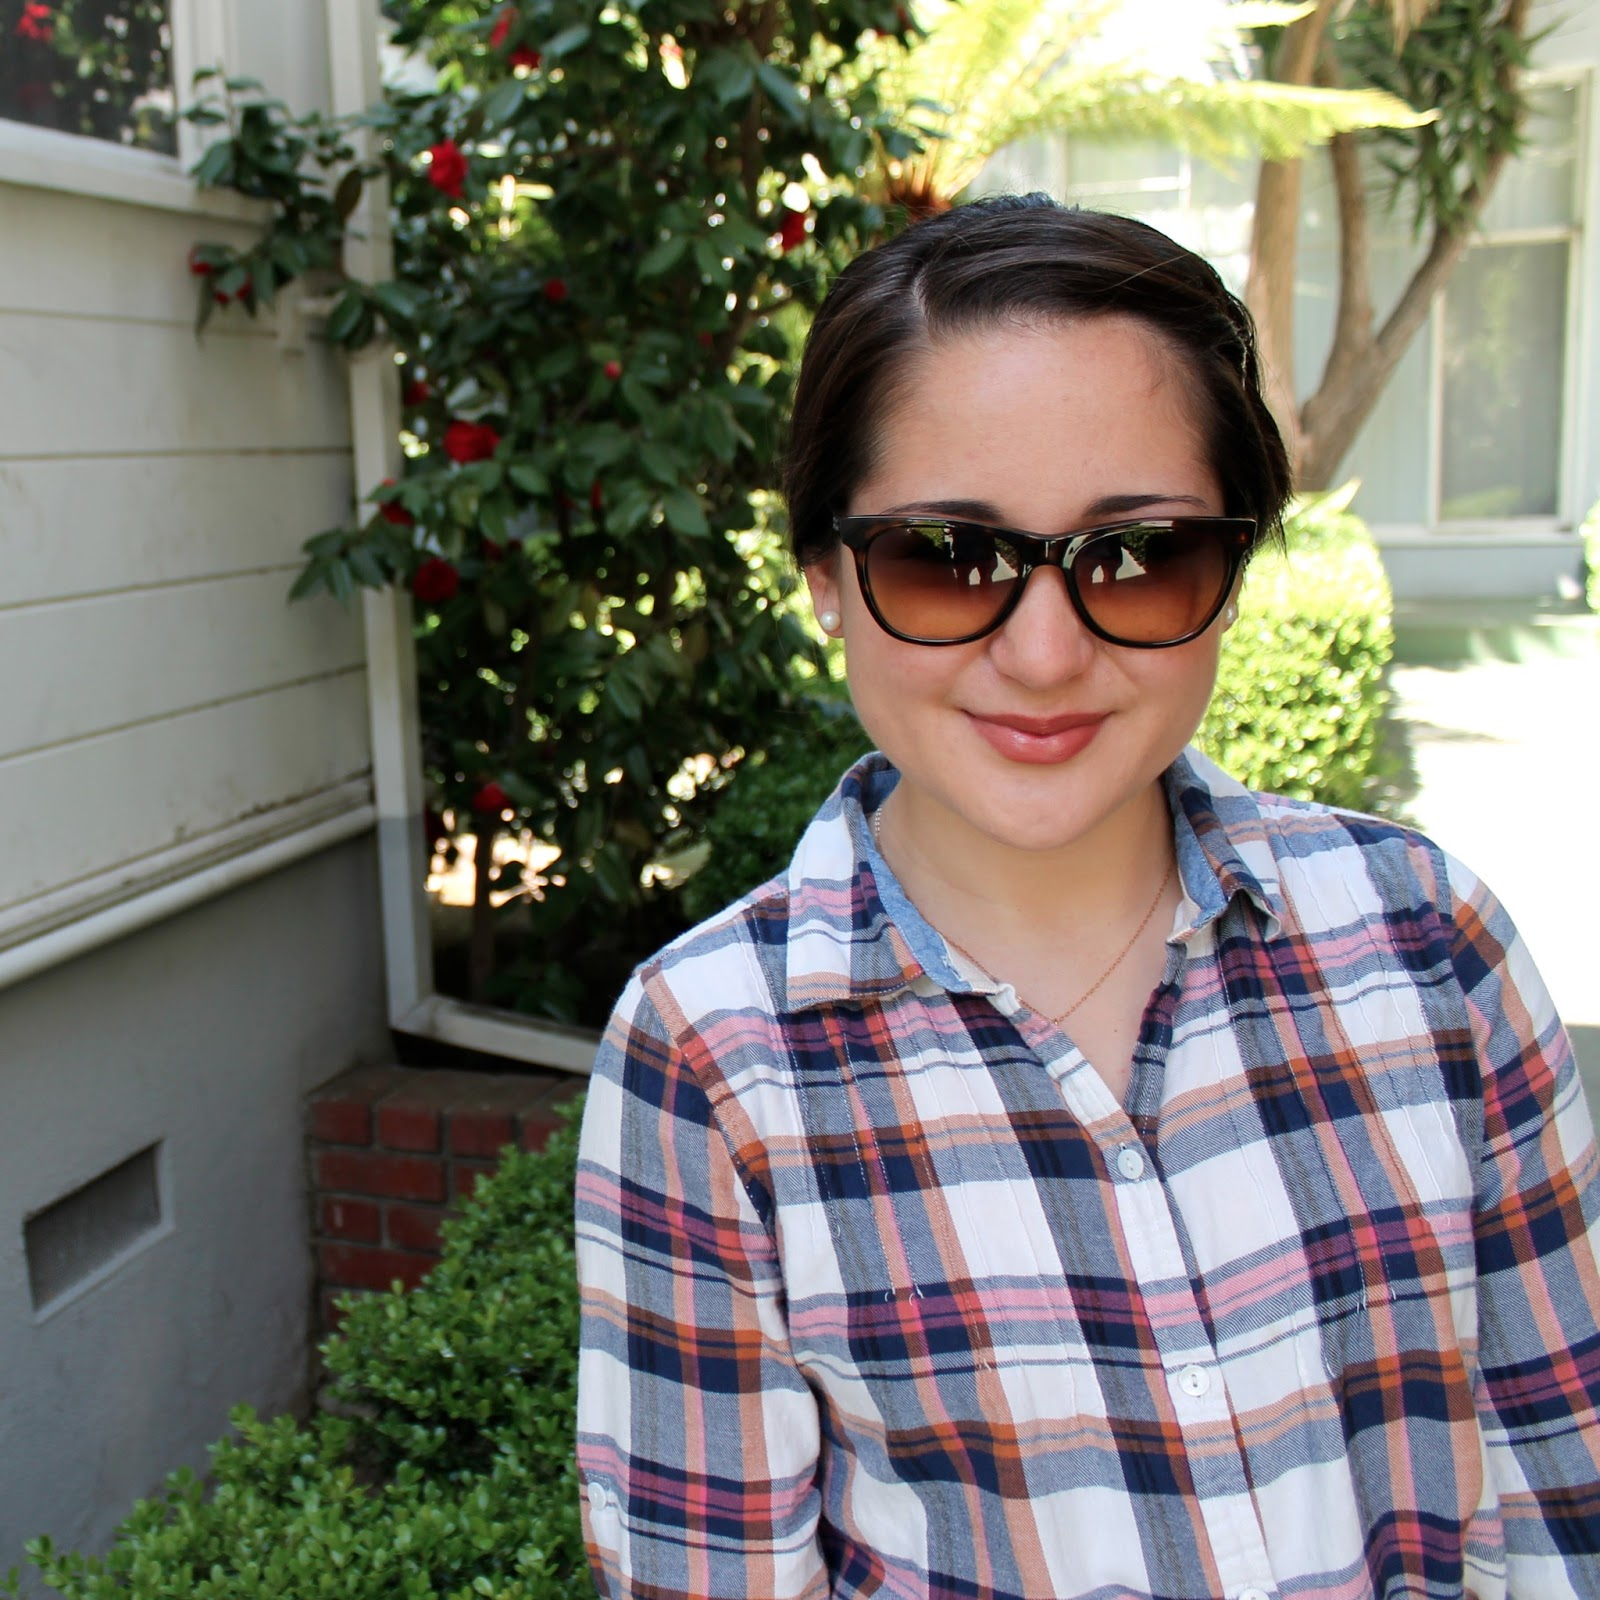 vintage-inspired-Ray-Ban-sunglasses-and-plaid-shirt